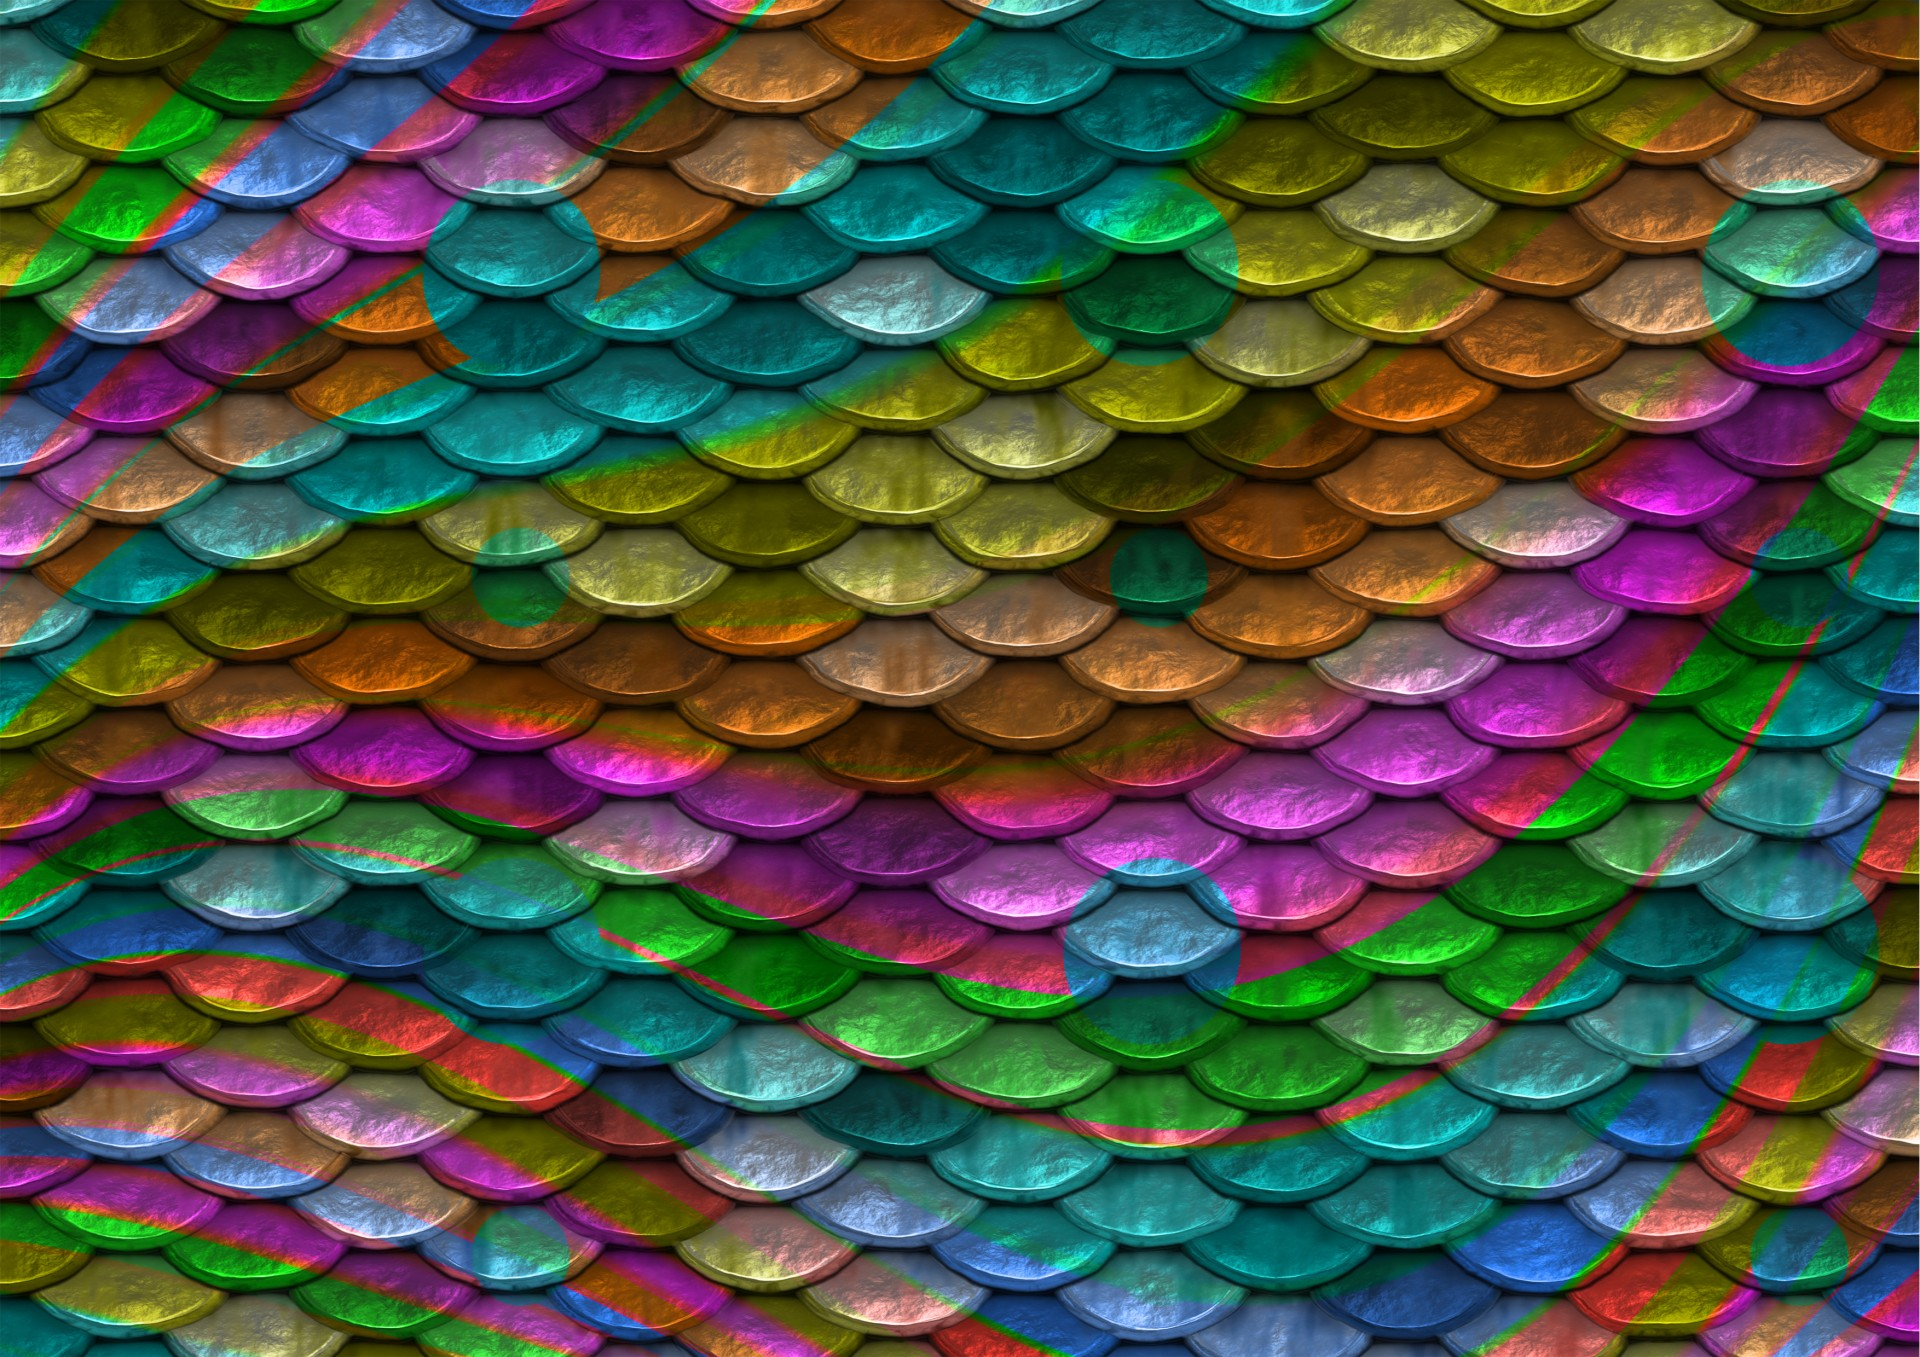 scales-backround-rainbow-colors